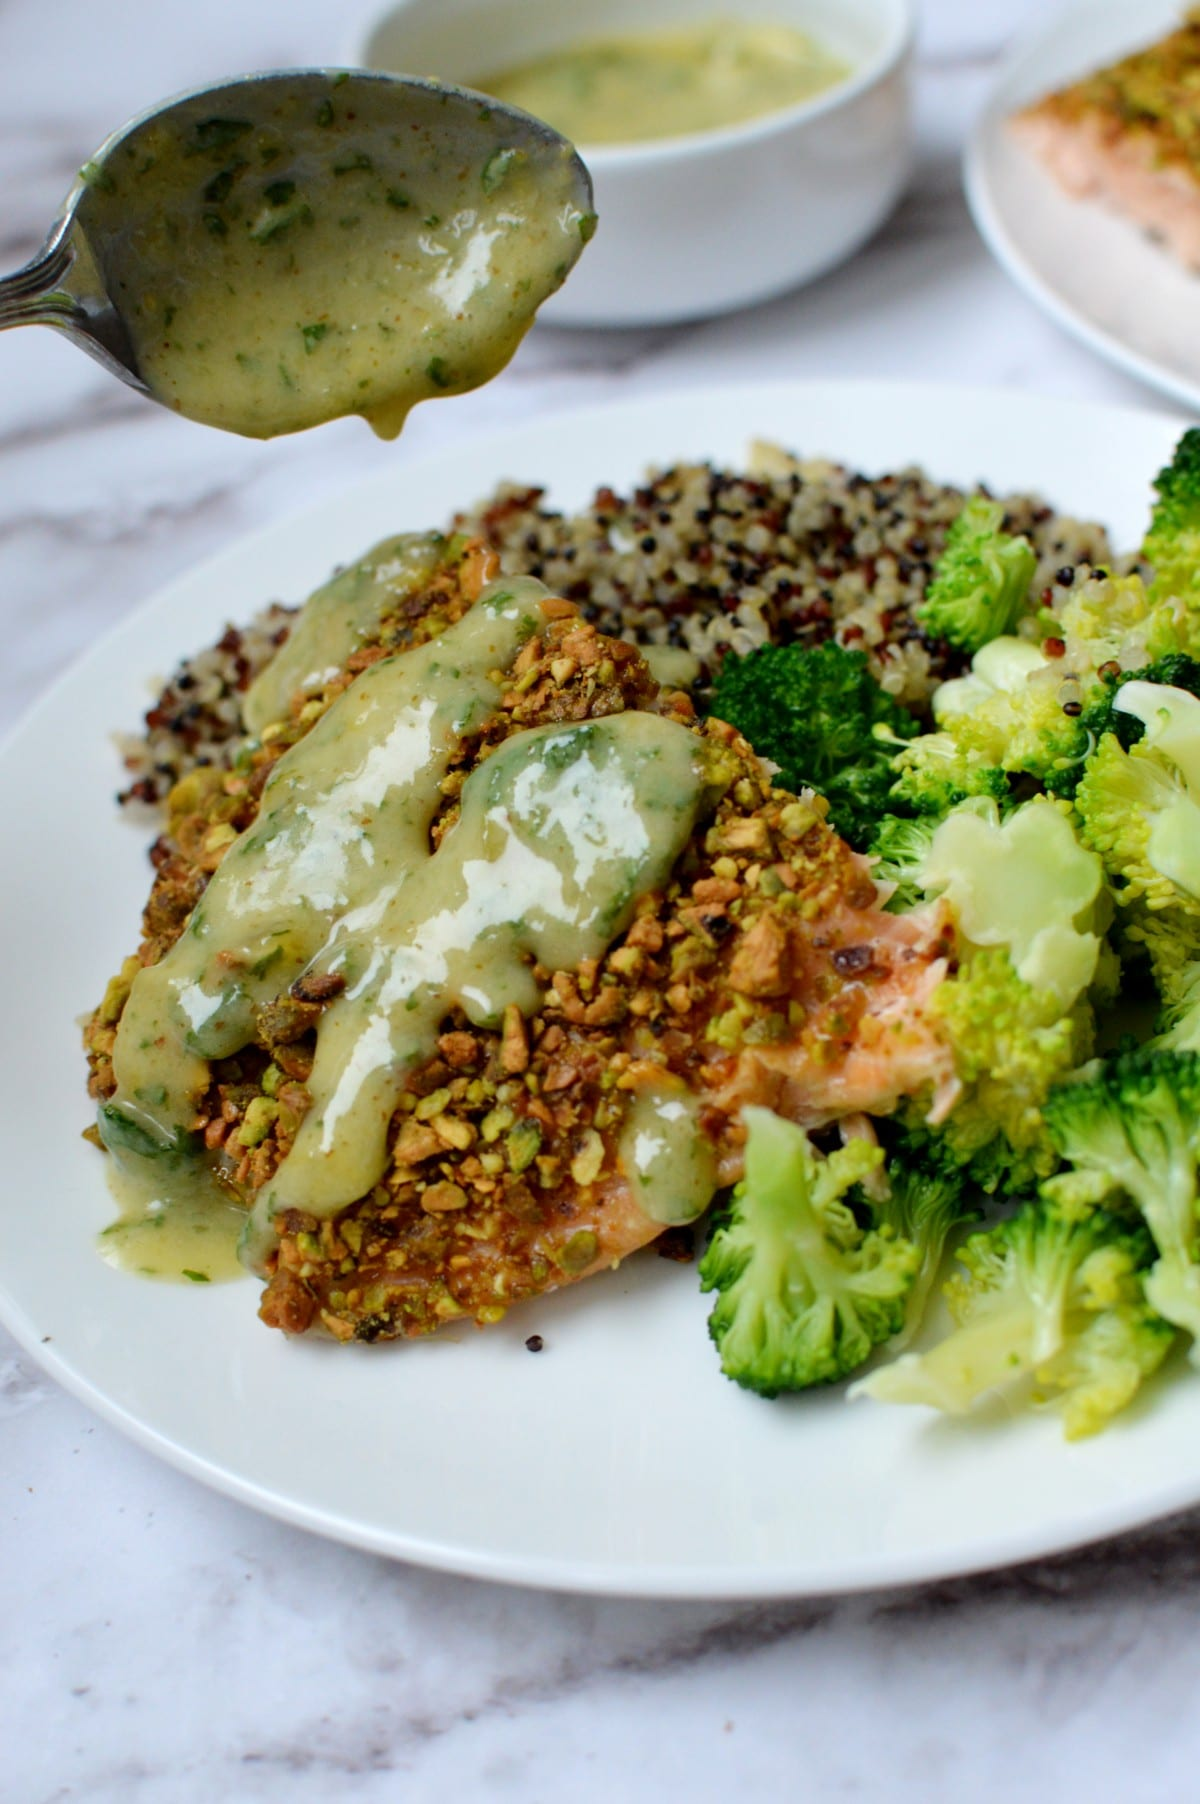 A plate of salmon with broccoli and quinoa